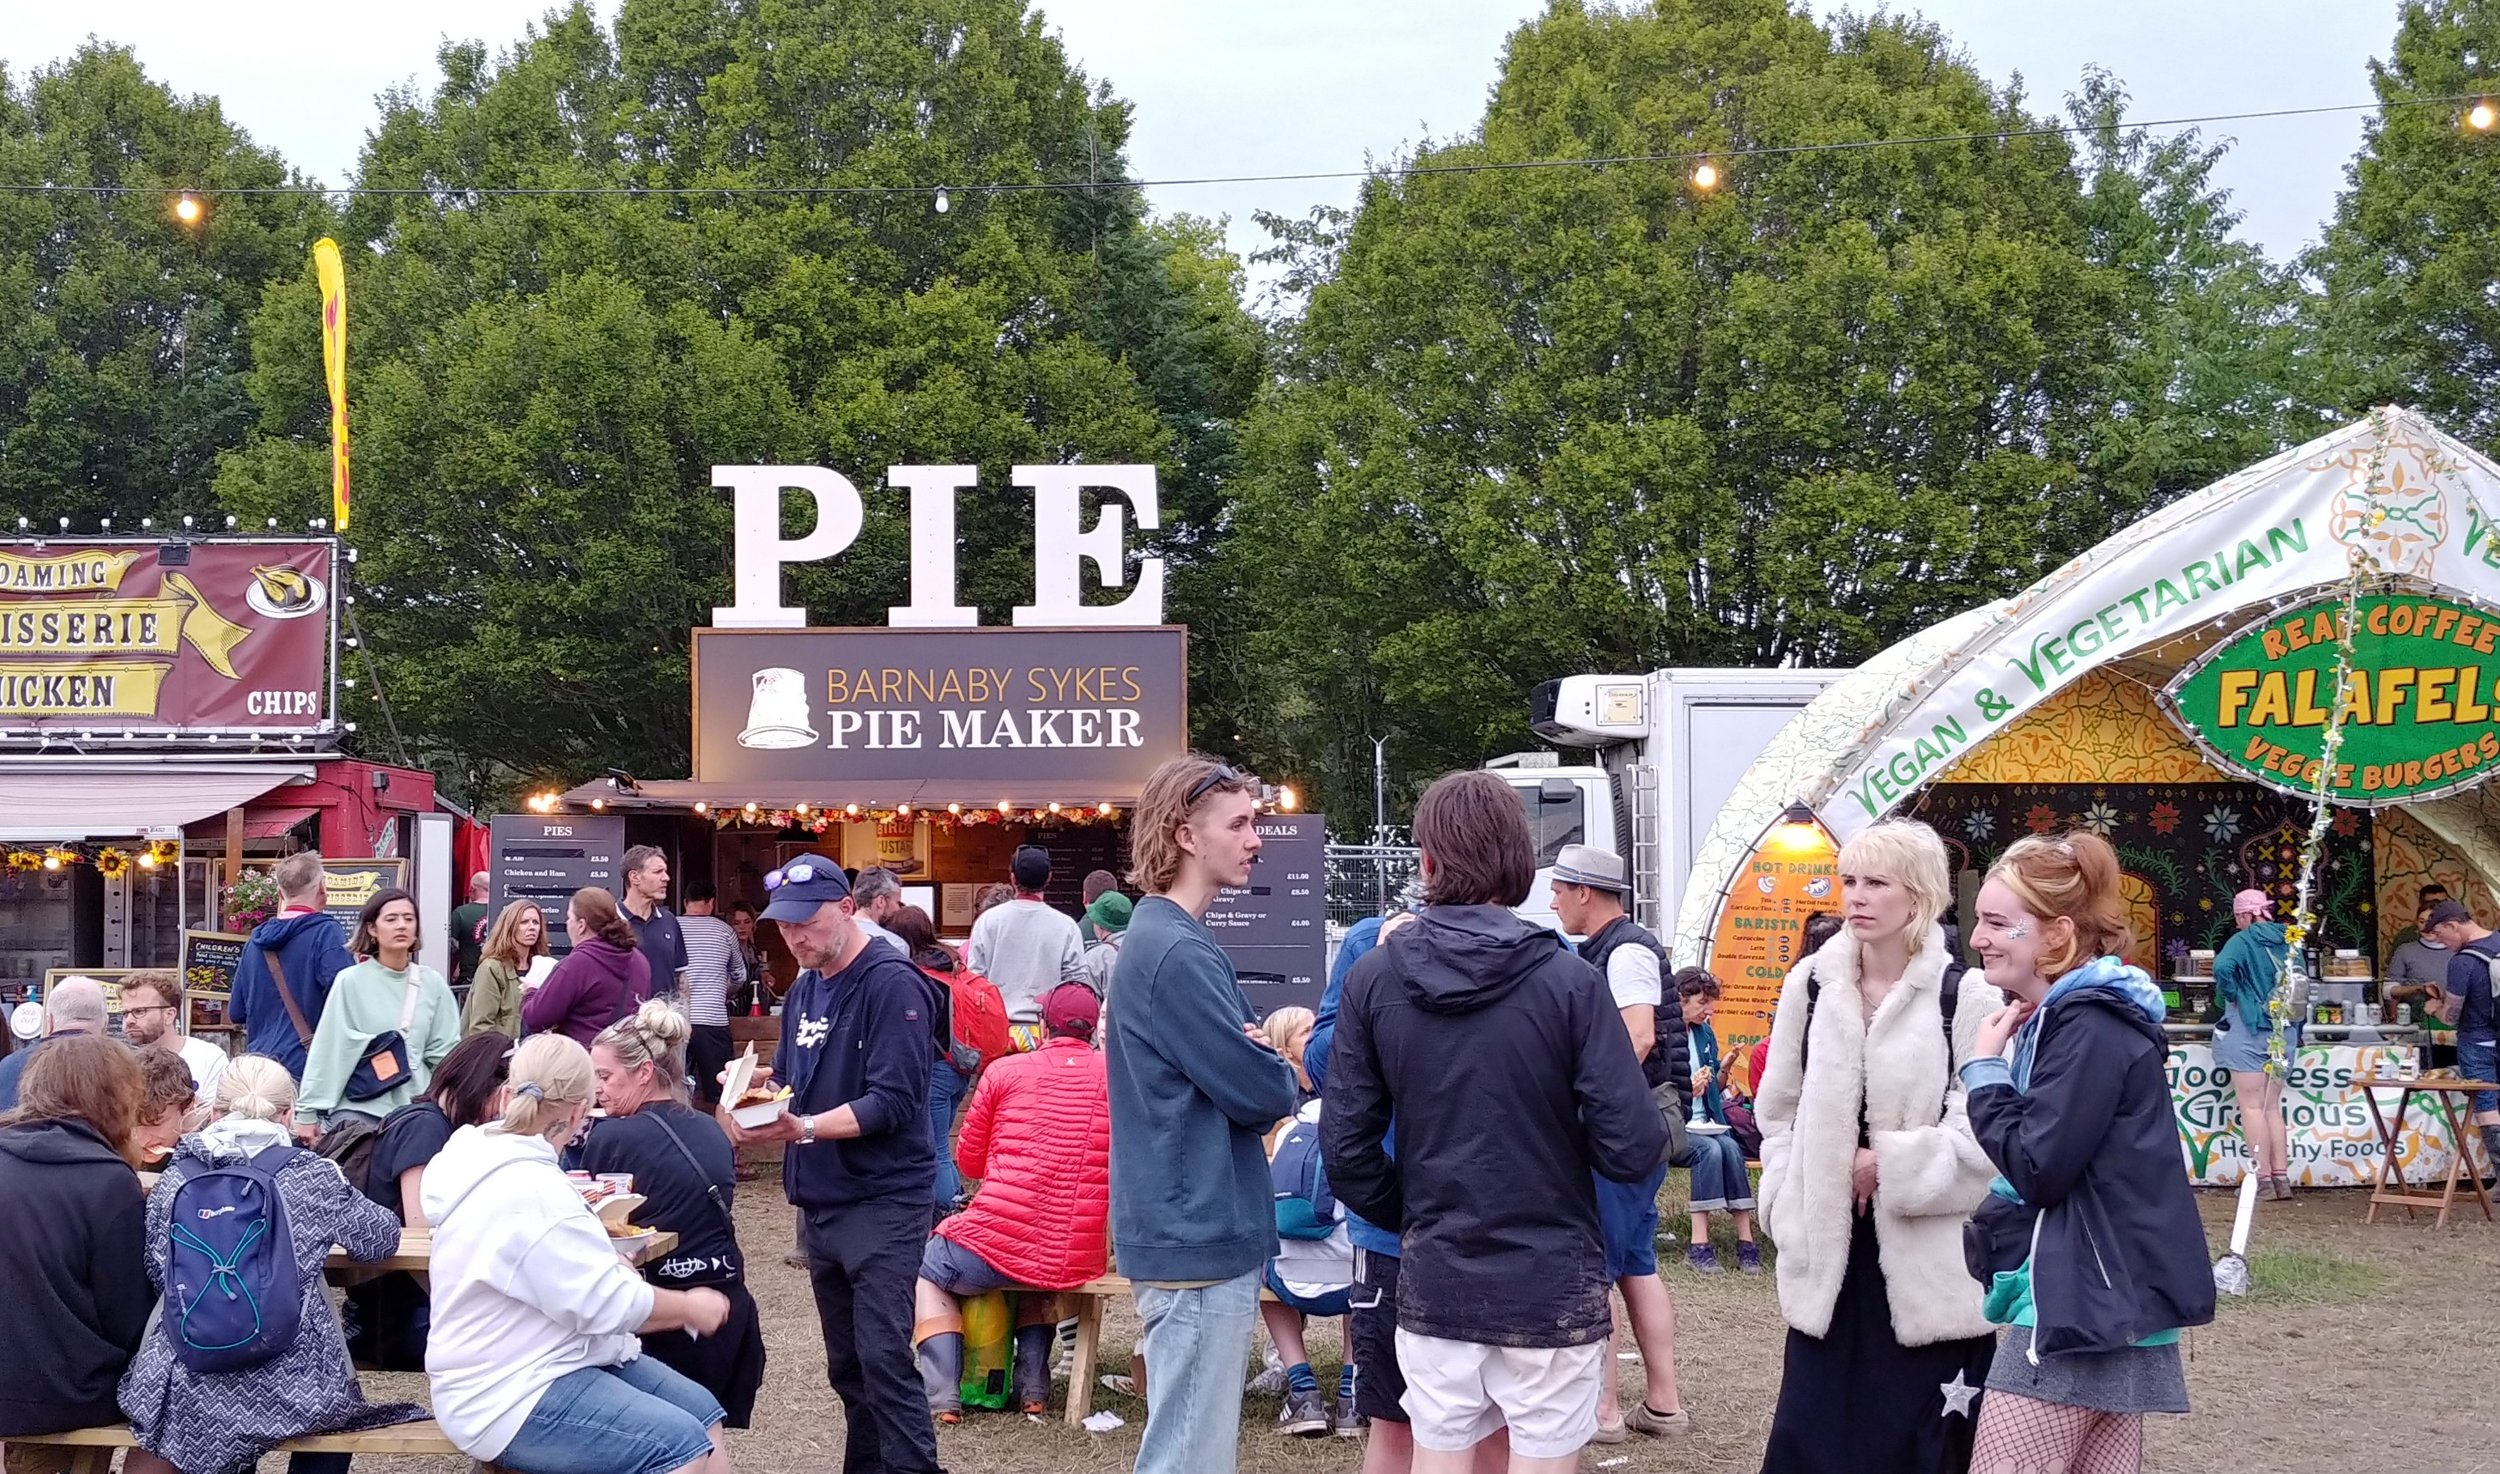 The second most noticeable sign on the site. Bar and pie, all the basics covered.